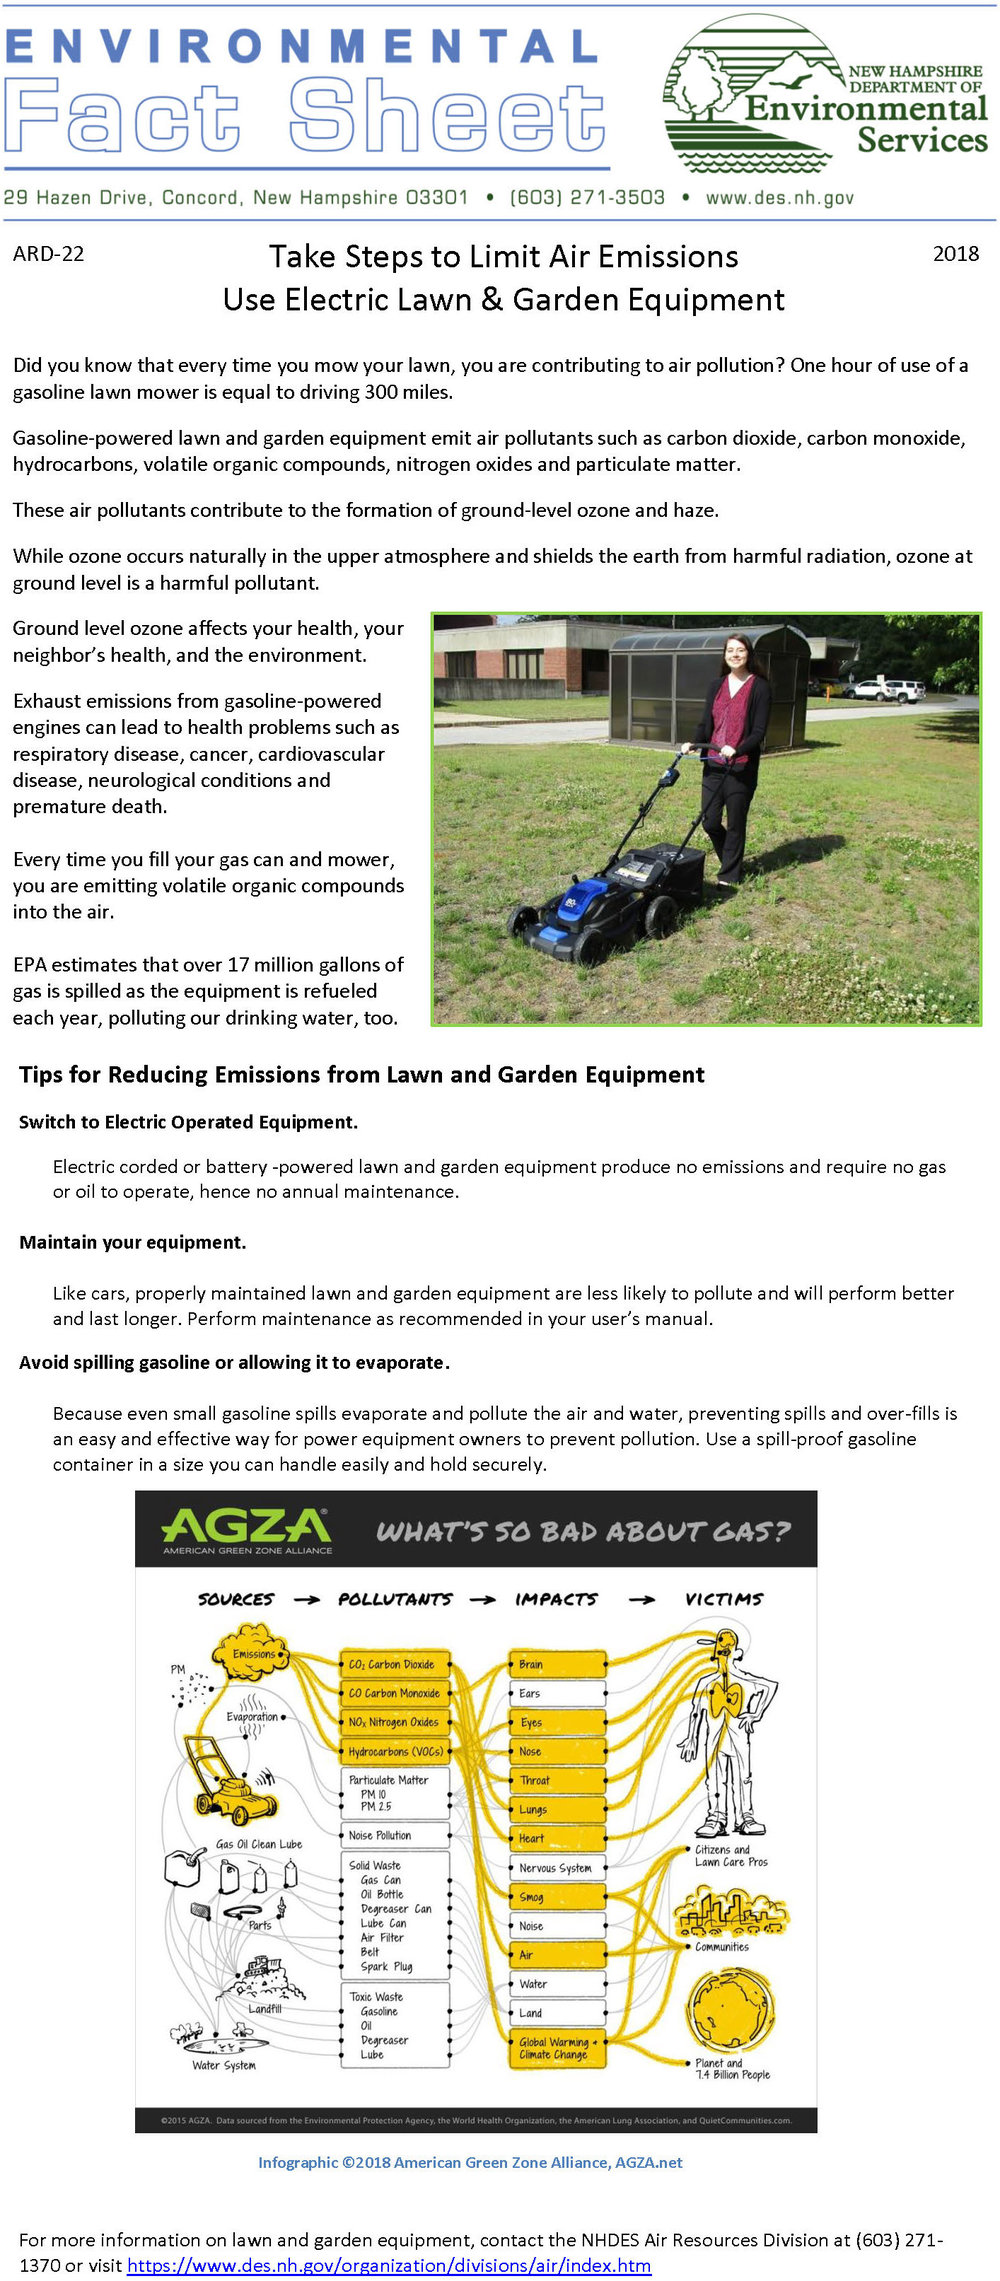 NHDES_Gas_Lawn_Care_Fact_Sheet.jpg